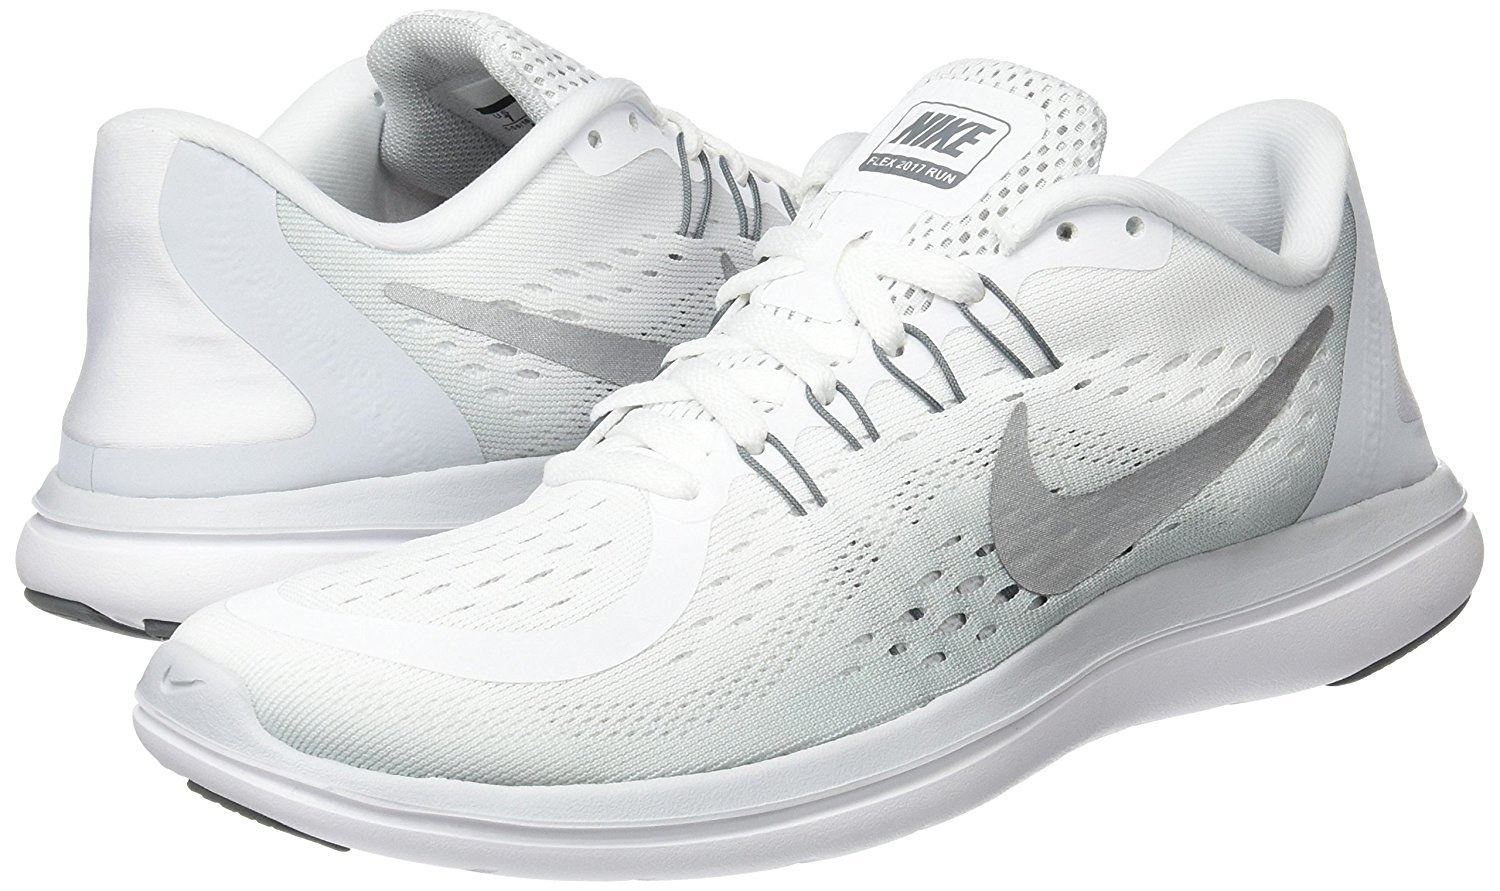 b8953ecdb6a Dual-density foam running shoes that have rubber pods at the toe and heel  giving them fantastic traction for both treadmill and trail.